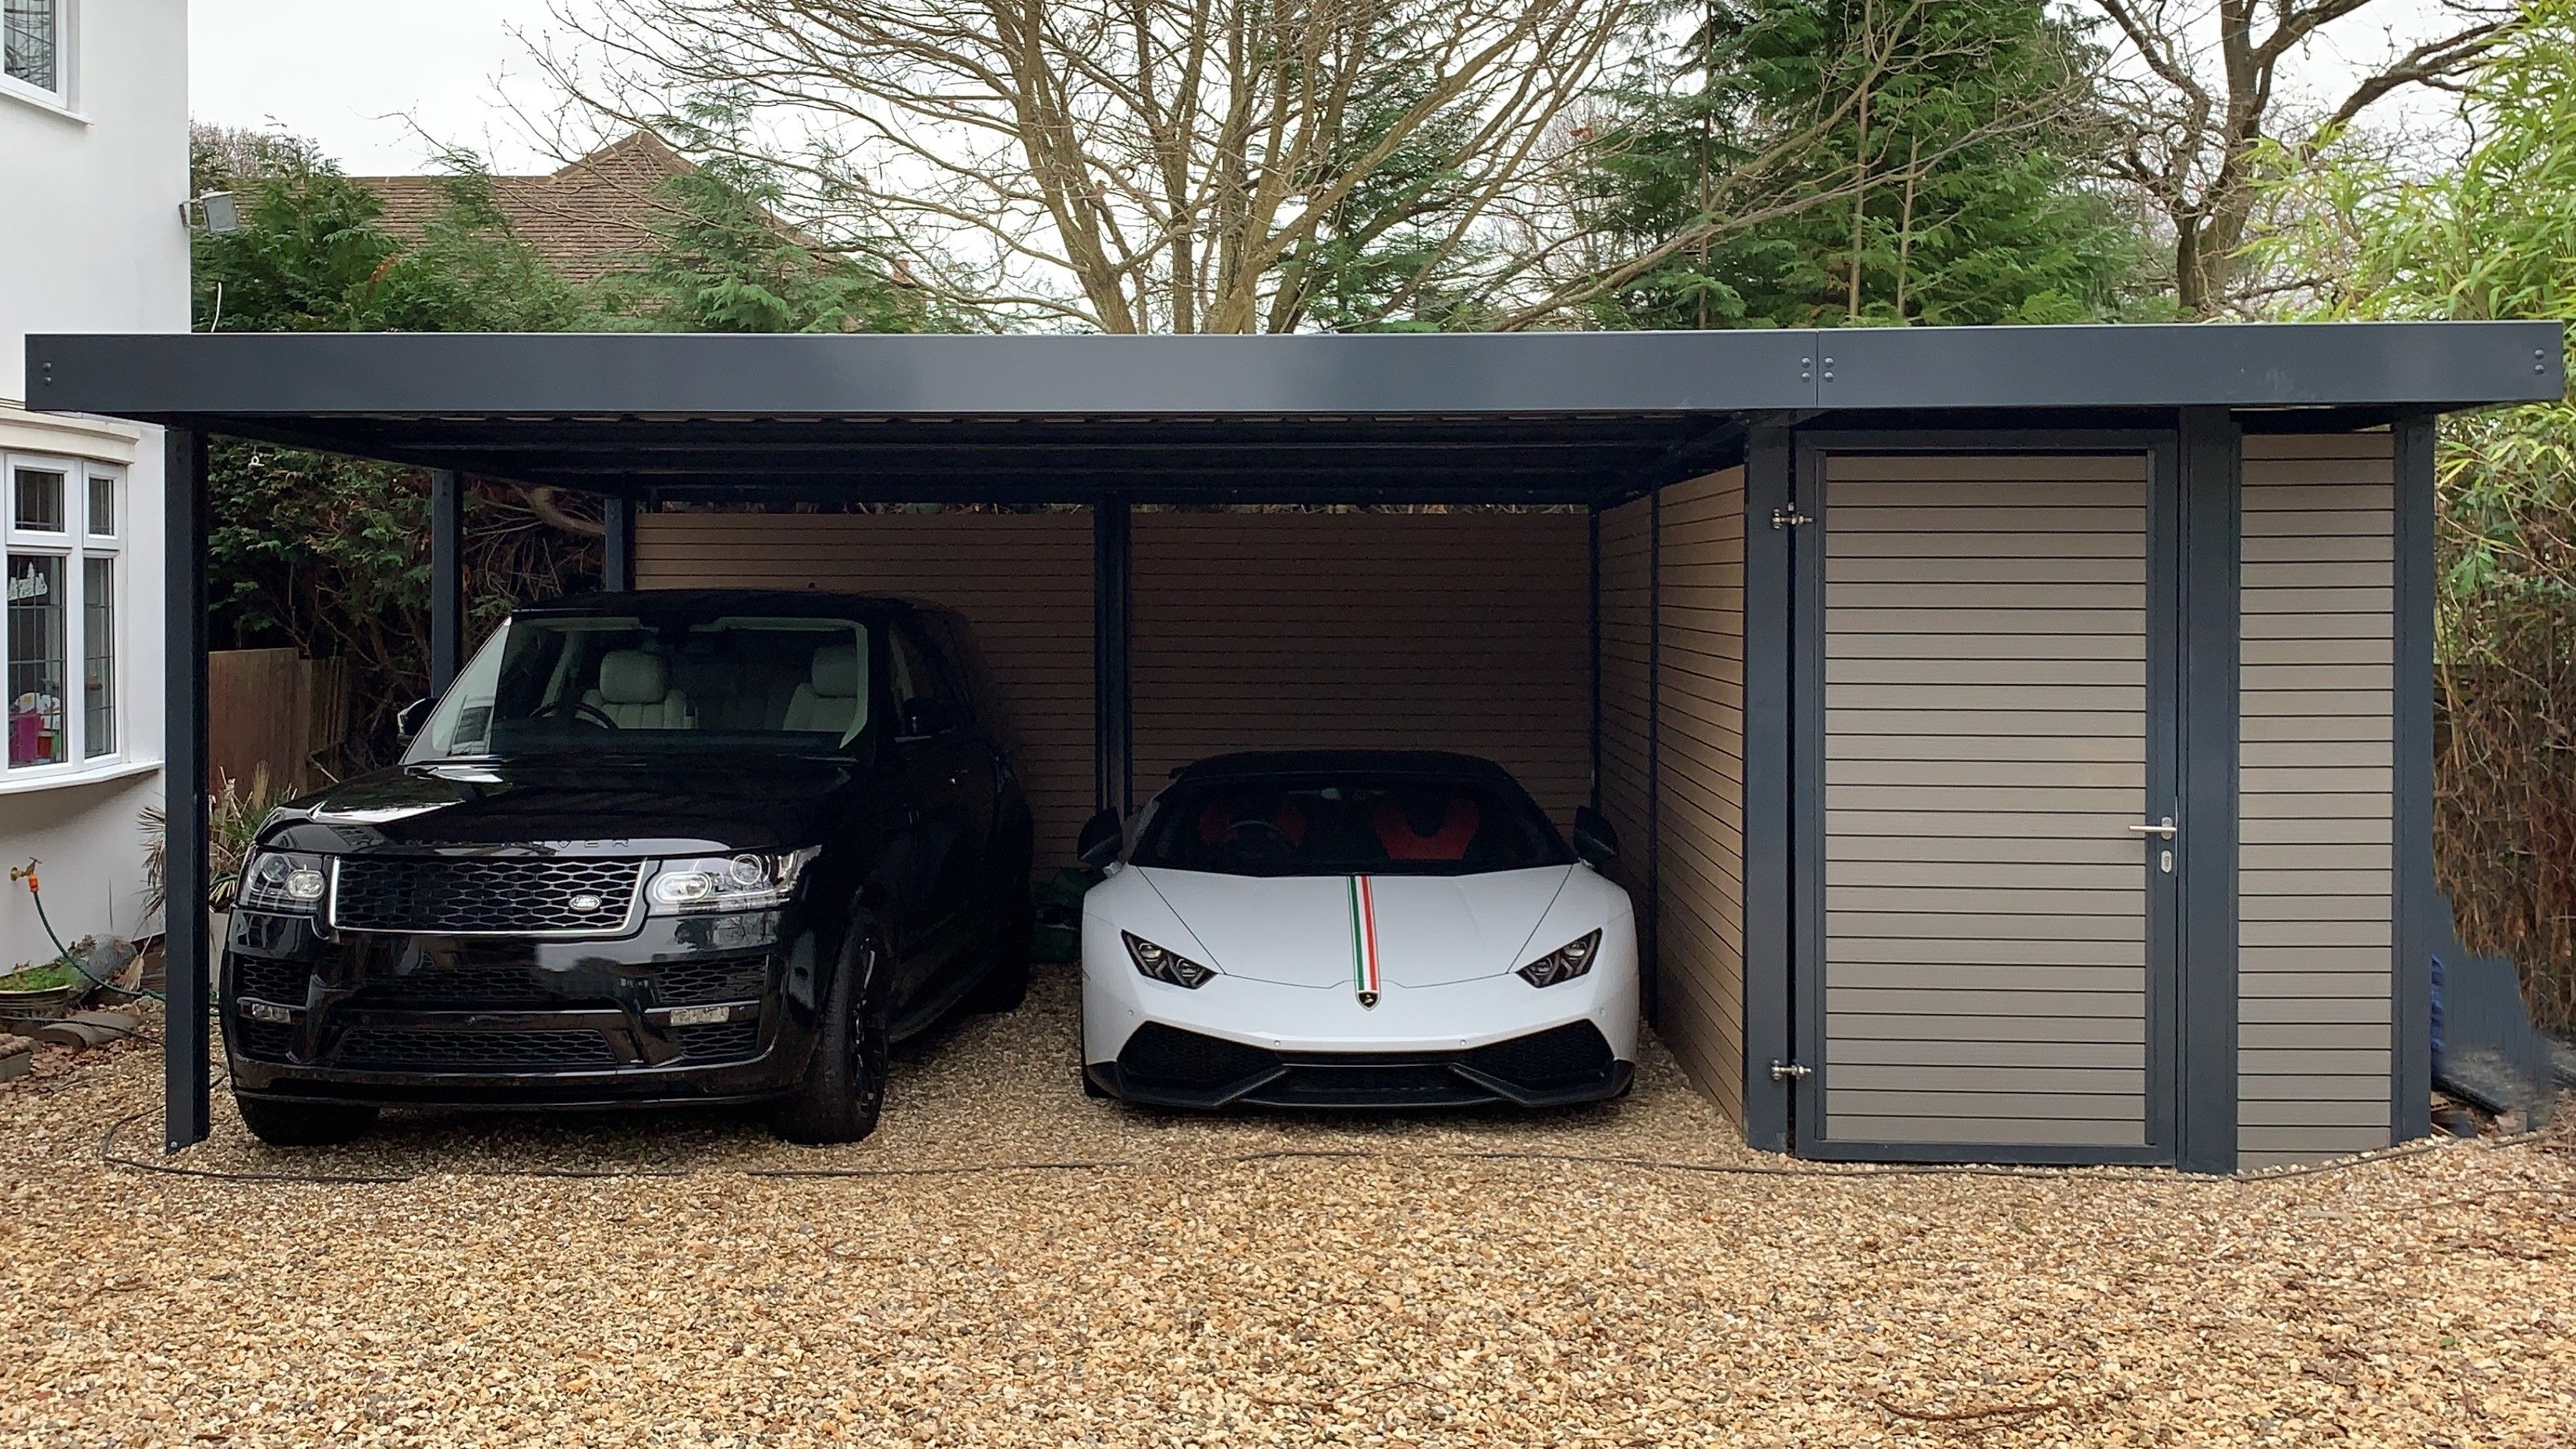 Contemporary double carport in Anthracite Grey (RAL 7016